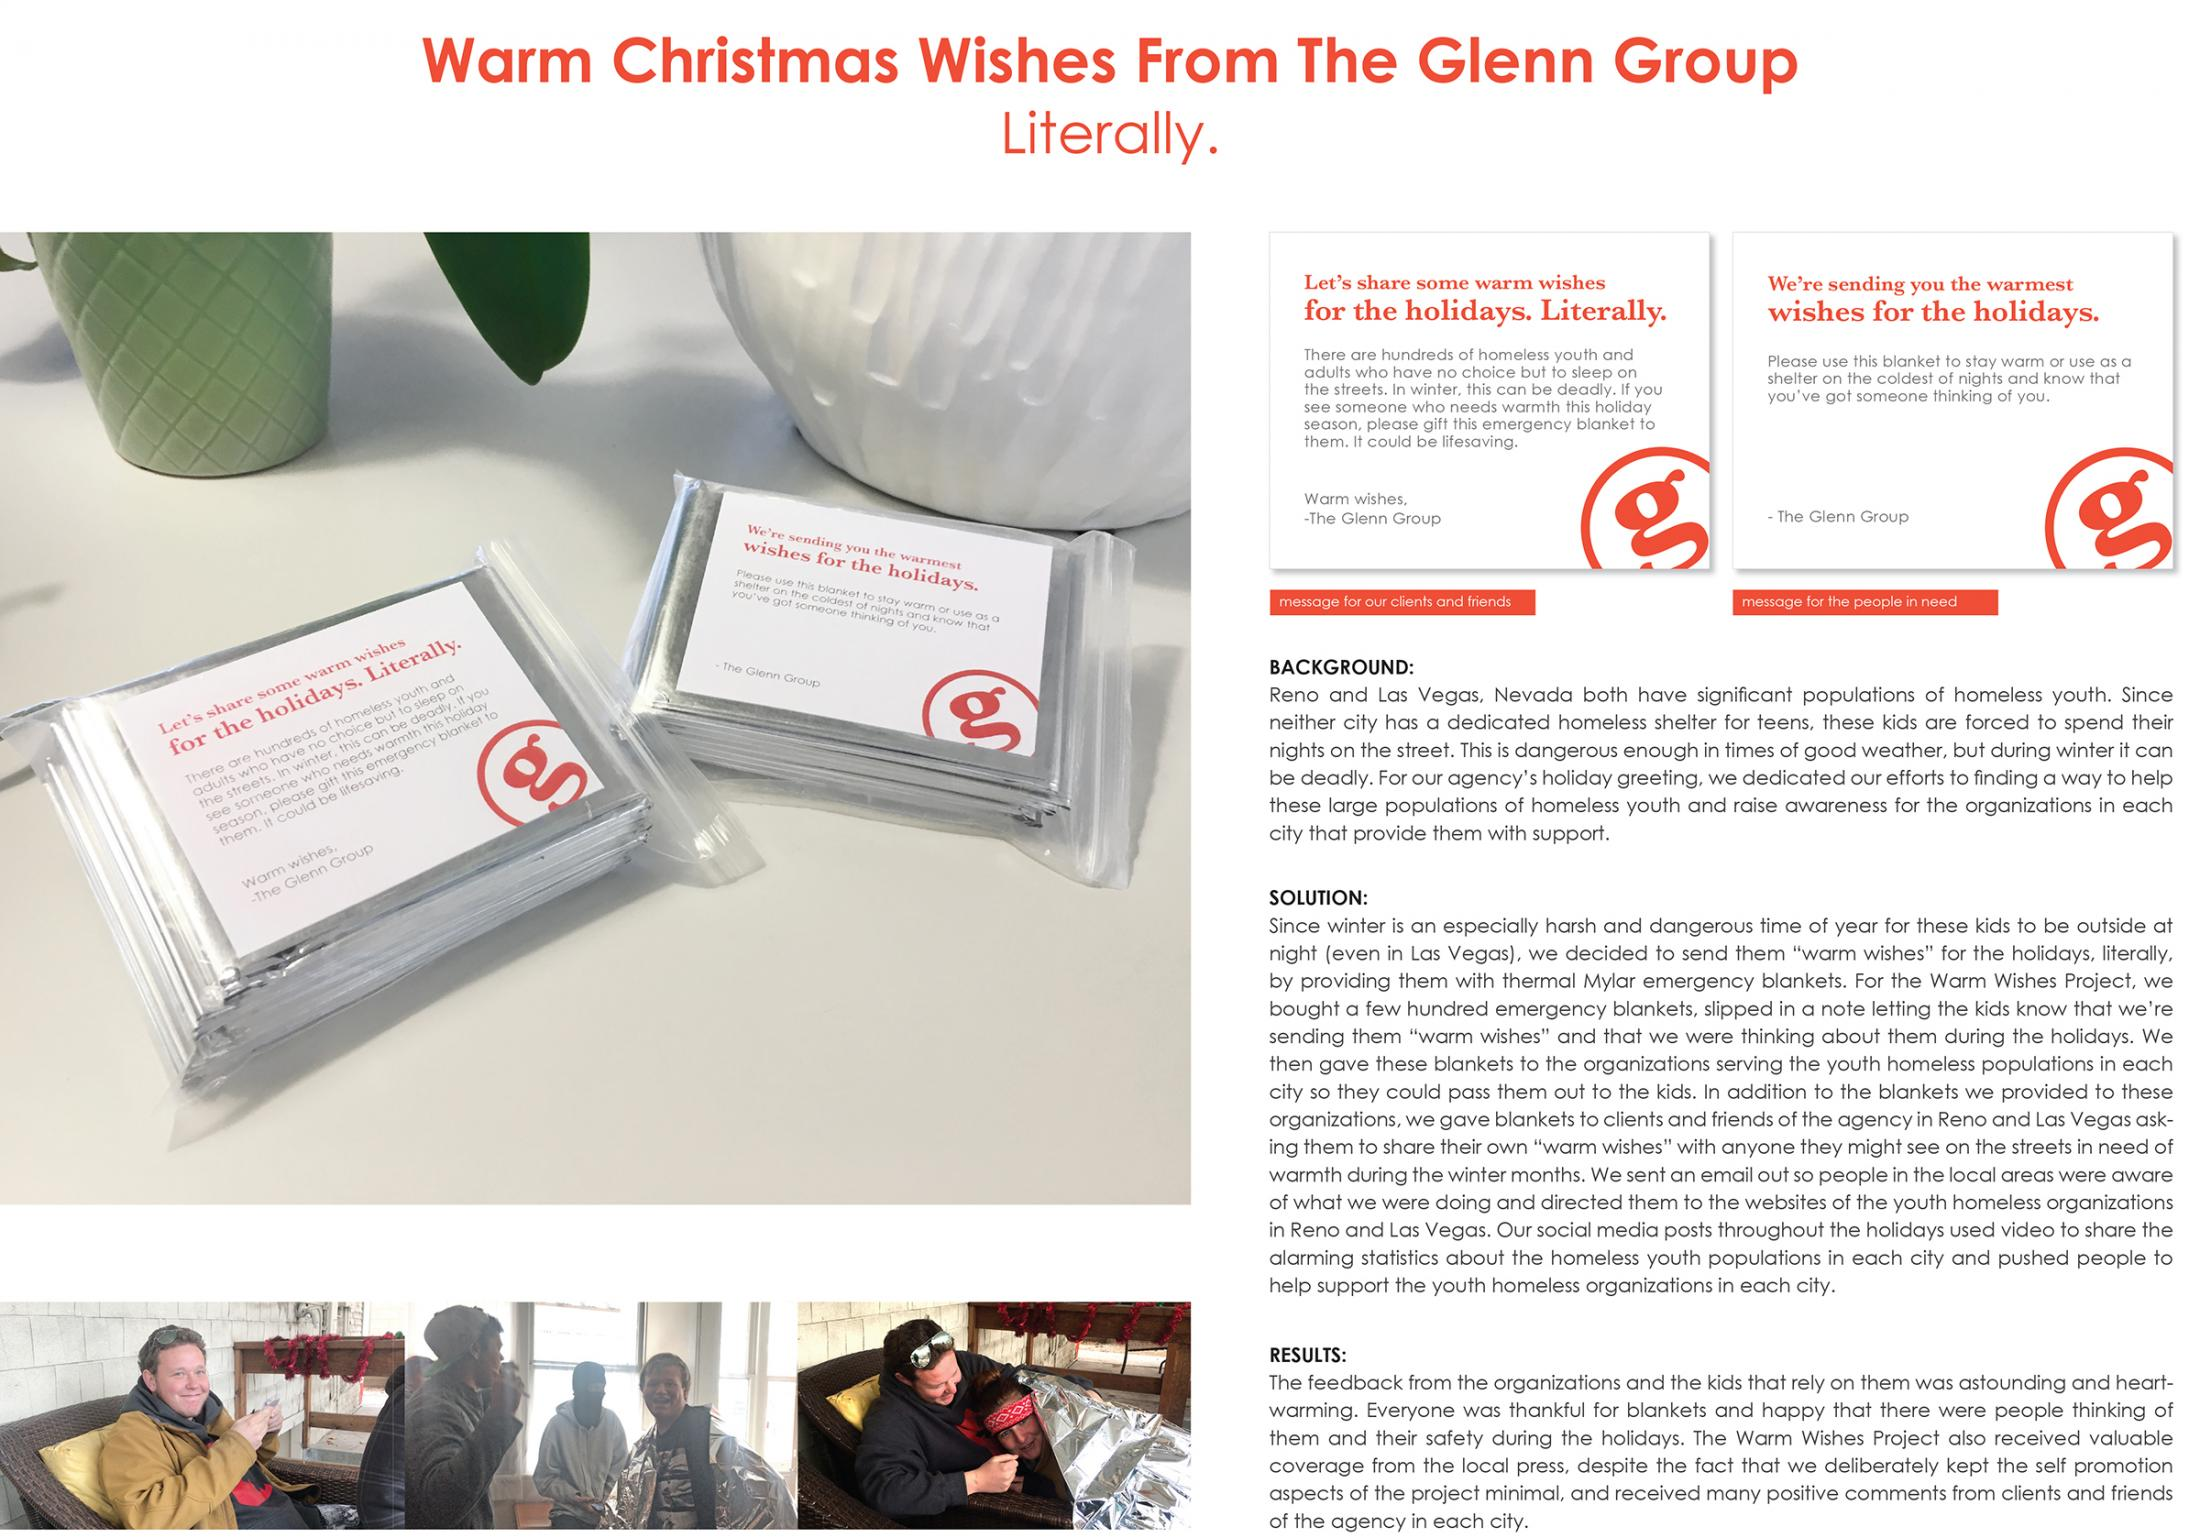 Warm Christmas Wishes From The Glenn Group, Literally